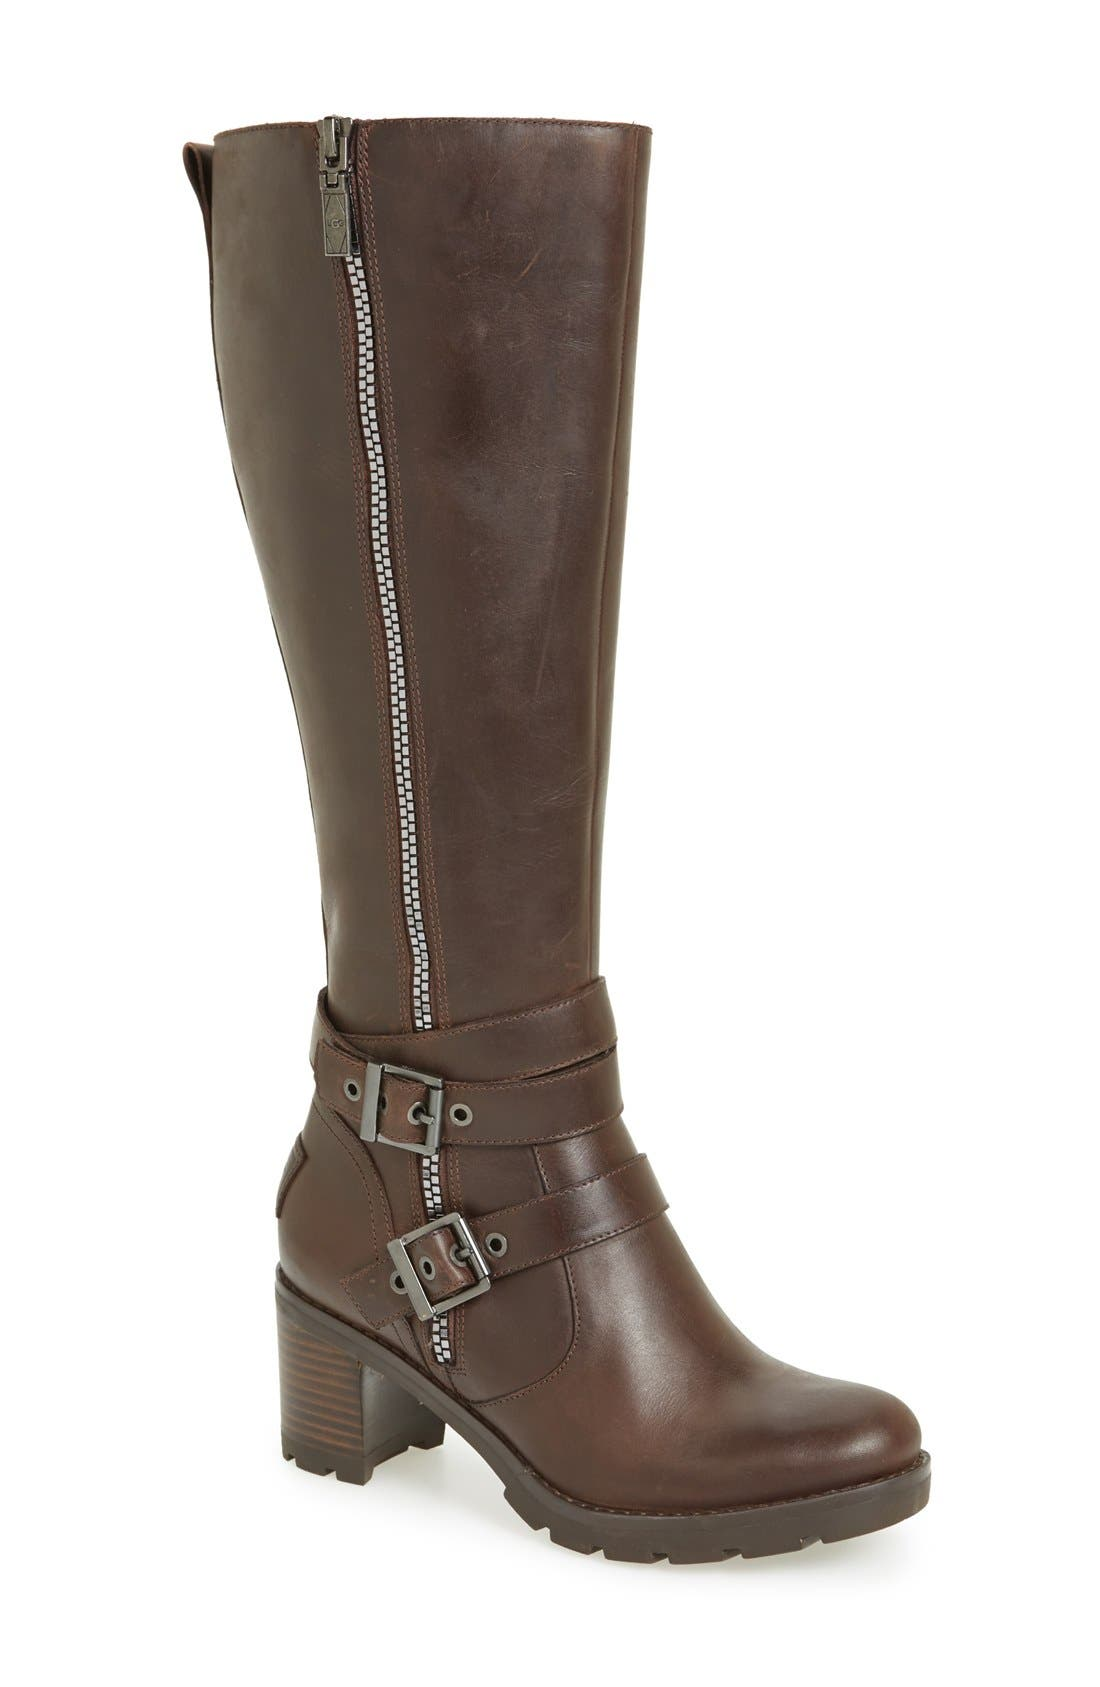 Main Image - UGG® 'Lana' Water Resistant Genuine Shearling Lined Leather Boot (Women)